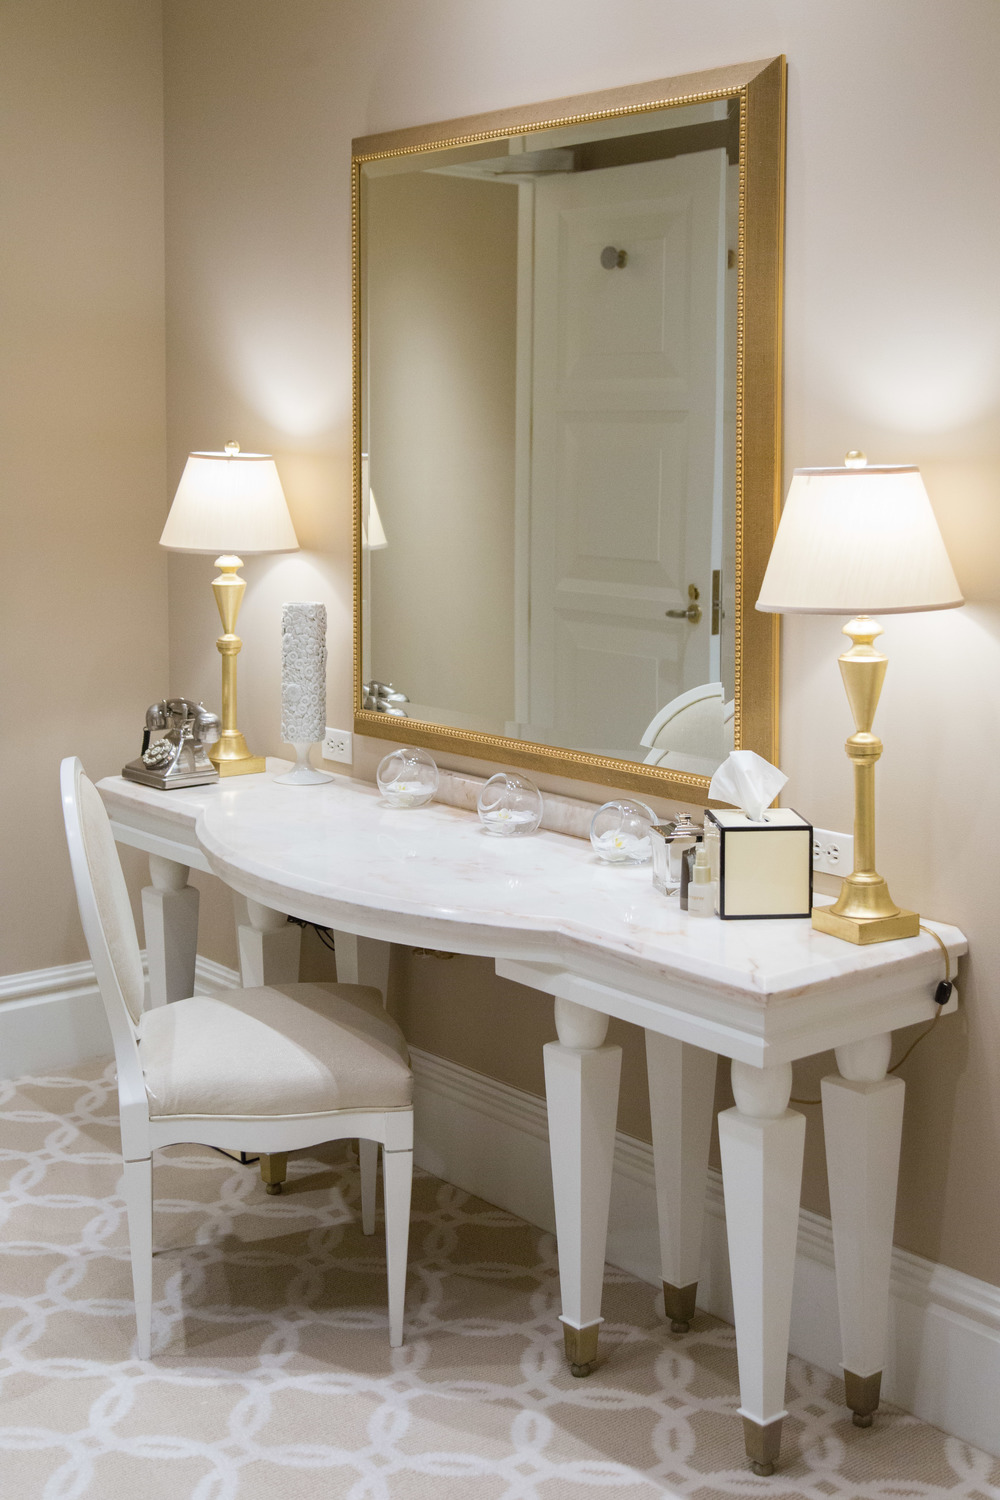 Wynn Hotel, wedding venue, Bride's suite, Bride's room, vanity, make-up mirror | Photographer: Tori Aston